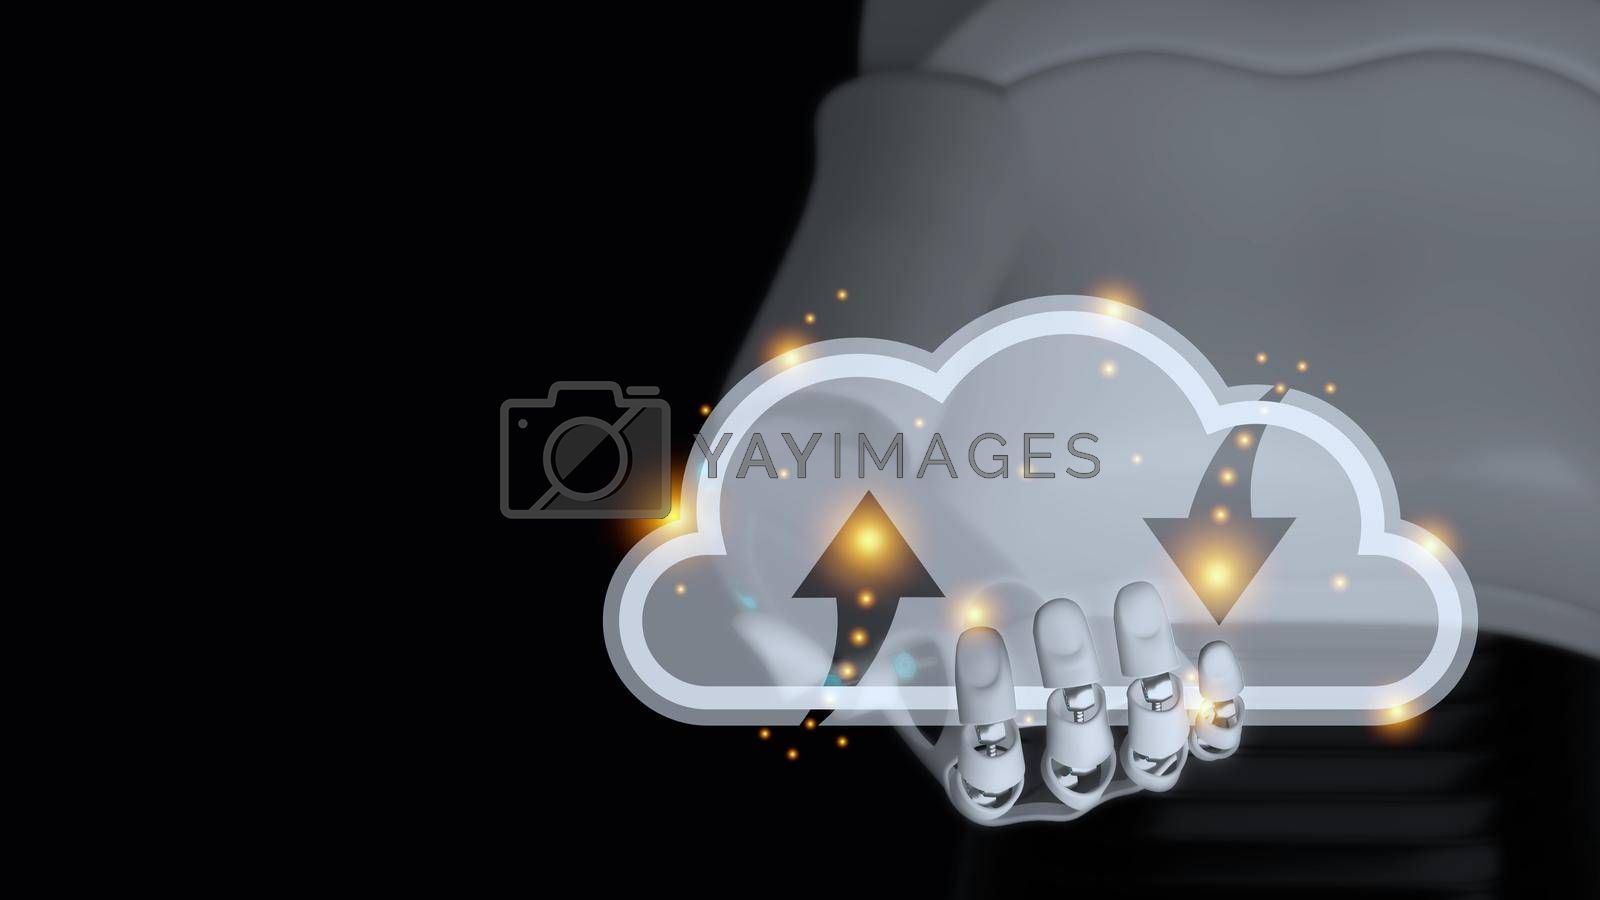 Royalty free image of Hand of cyborg is holding transparent glass cloud 3d render by eaglesky